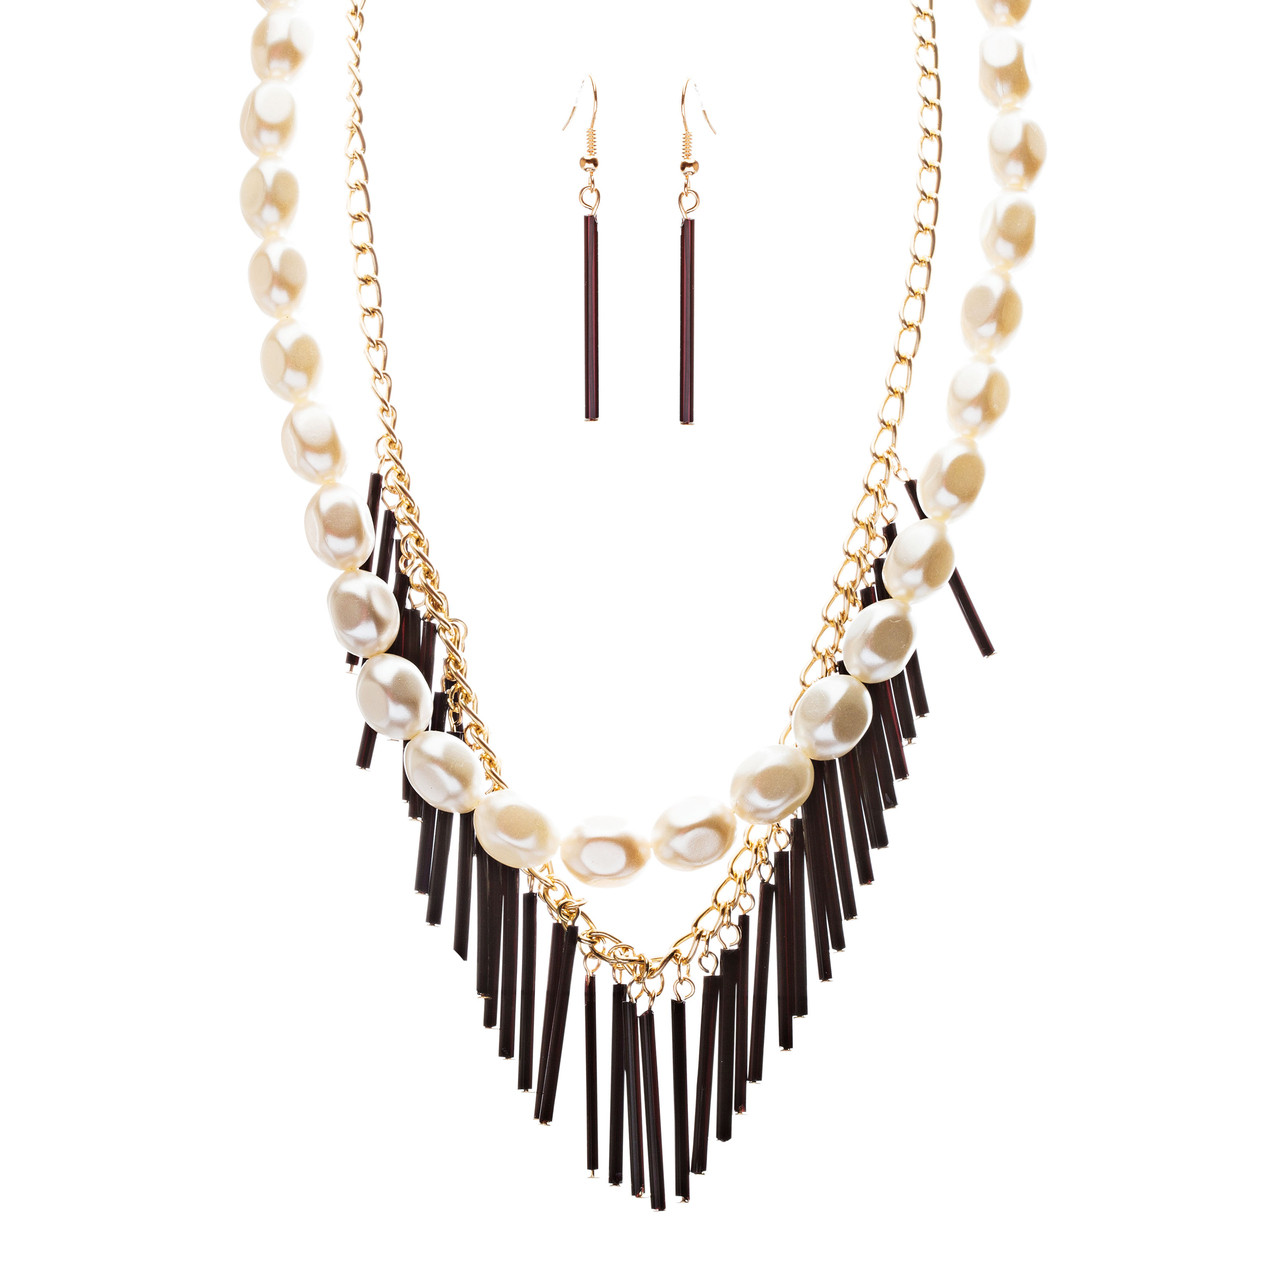 59cbb5960 Accessoriesforever | Elegance Fashion Faux Pearl Multi Layered Chain  Necklace And Earrings JN262Black